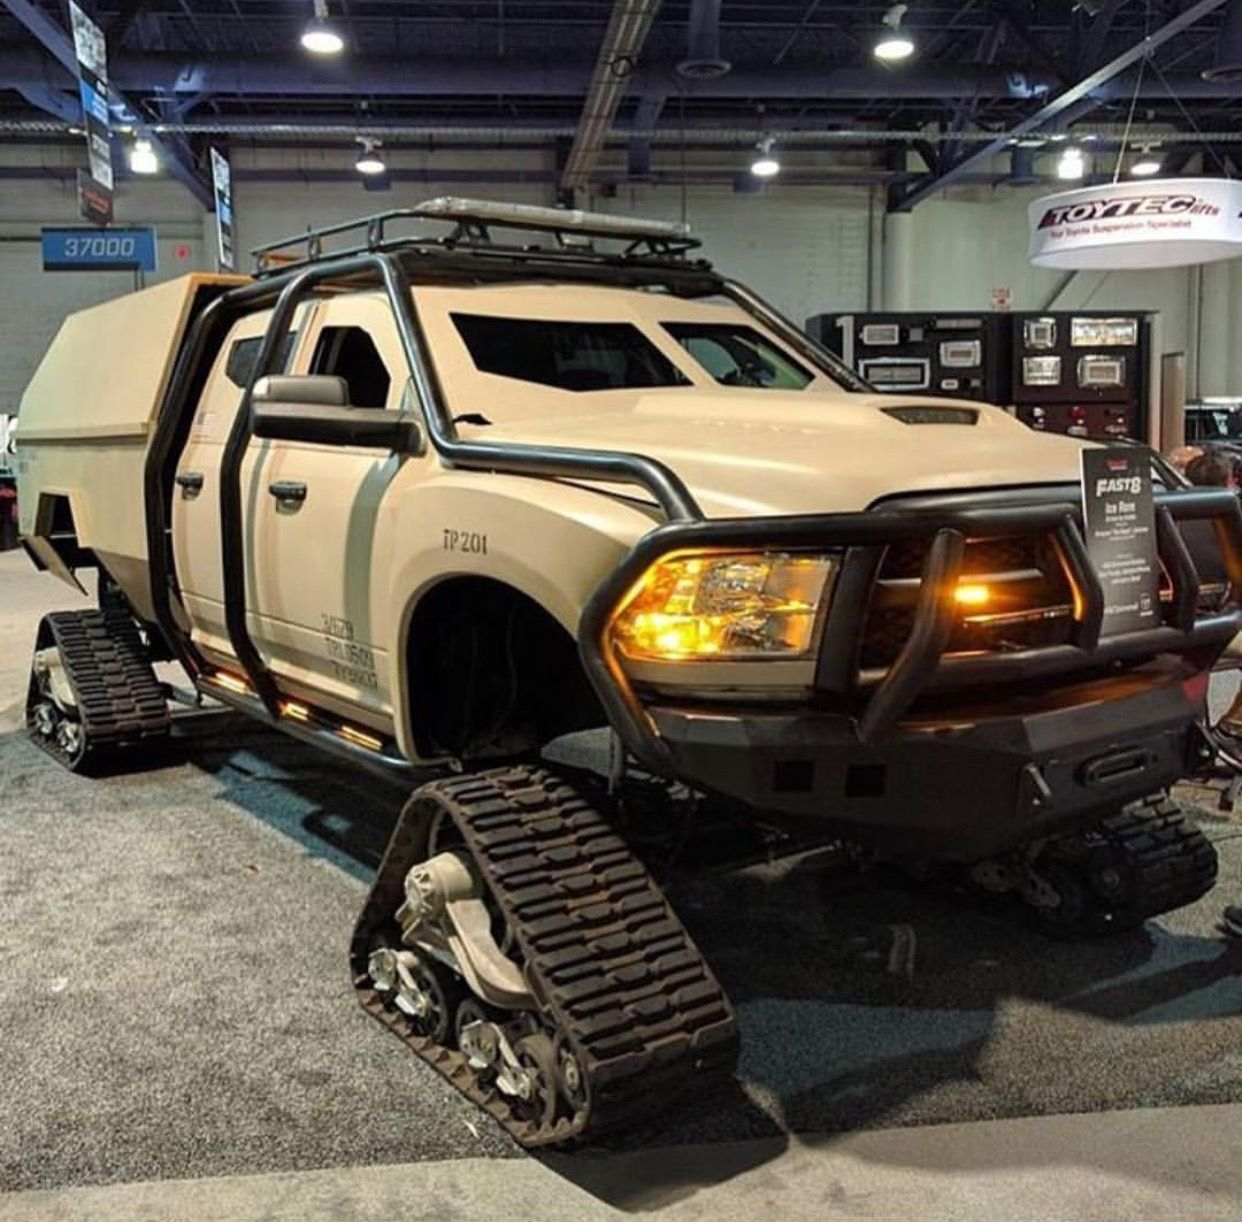 Militarized Dodge Ram                                                                                                                                                                                 More